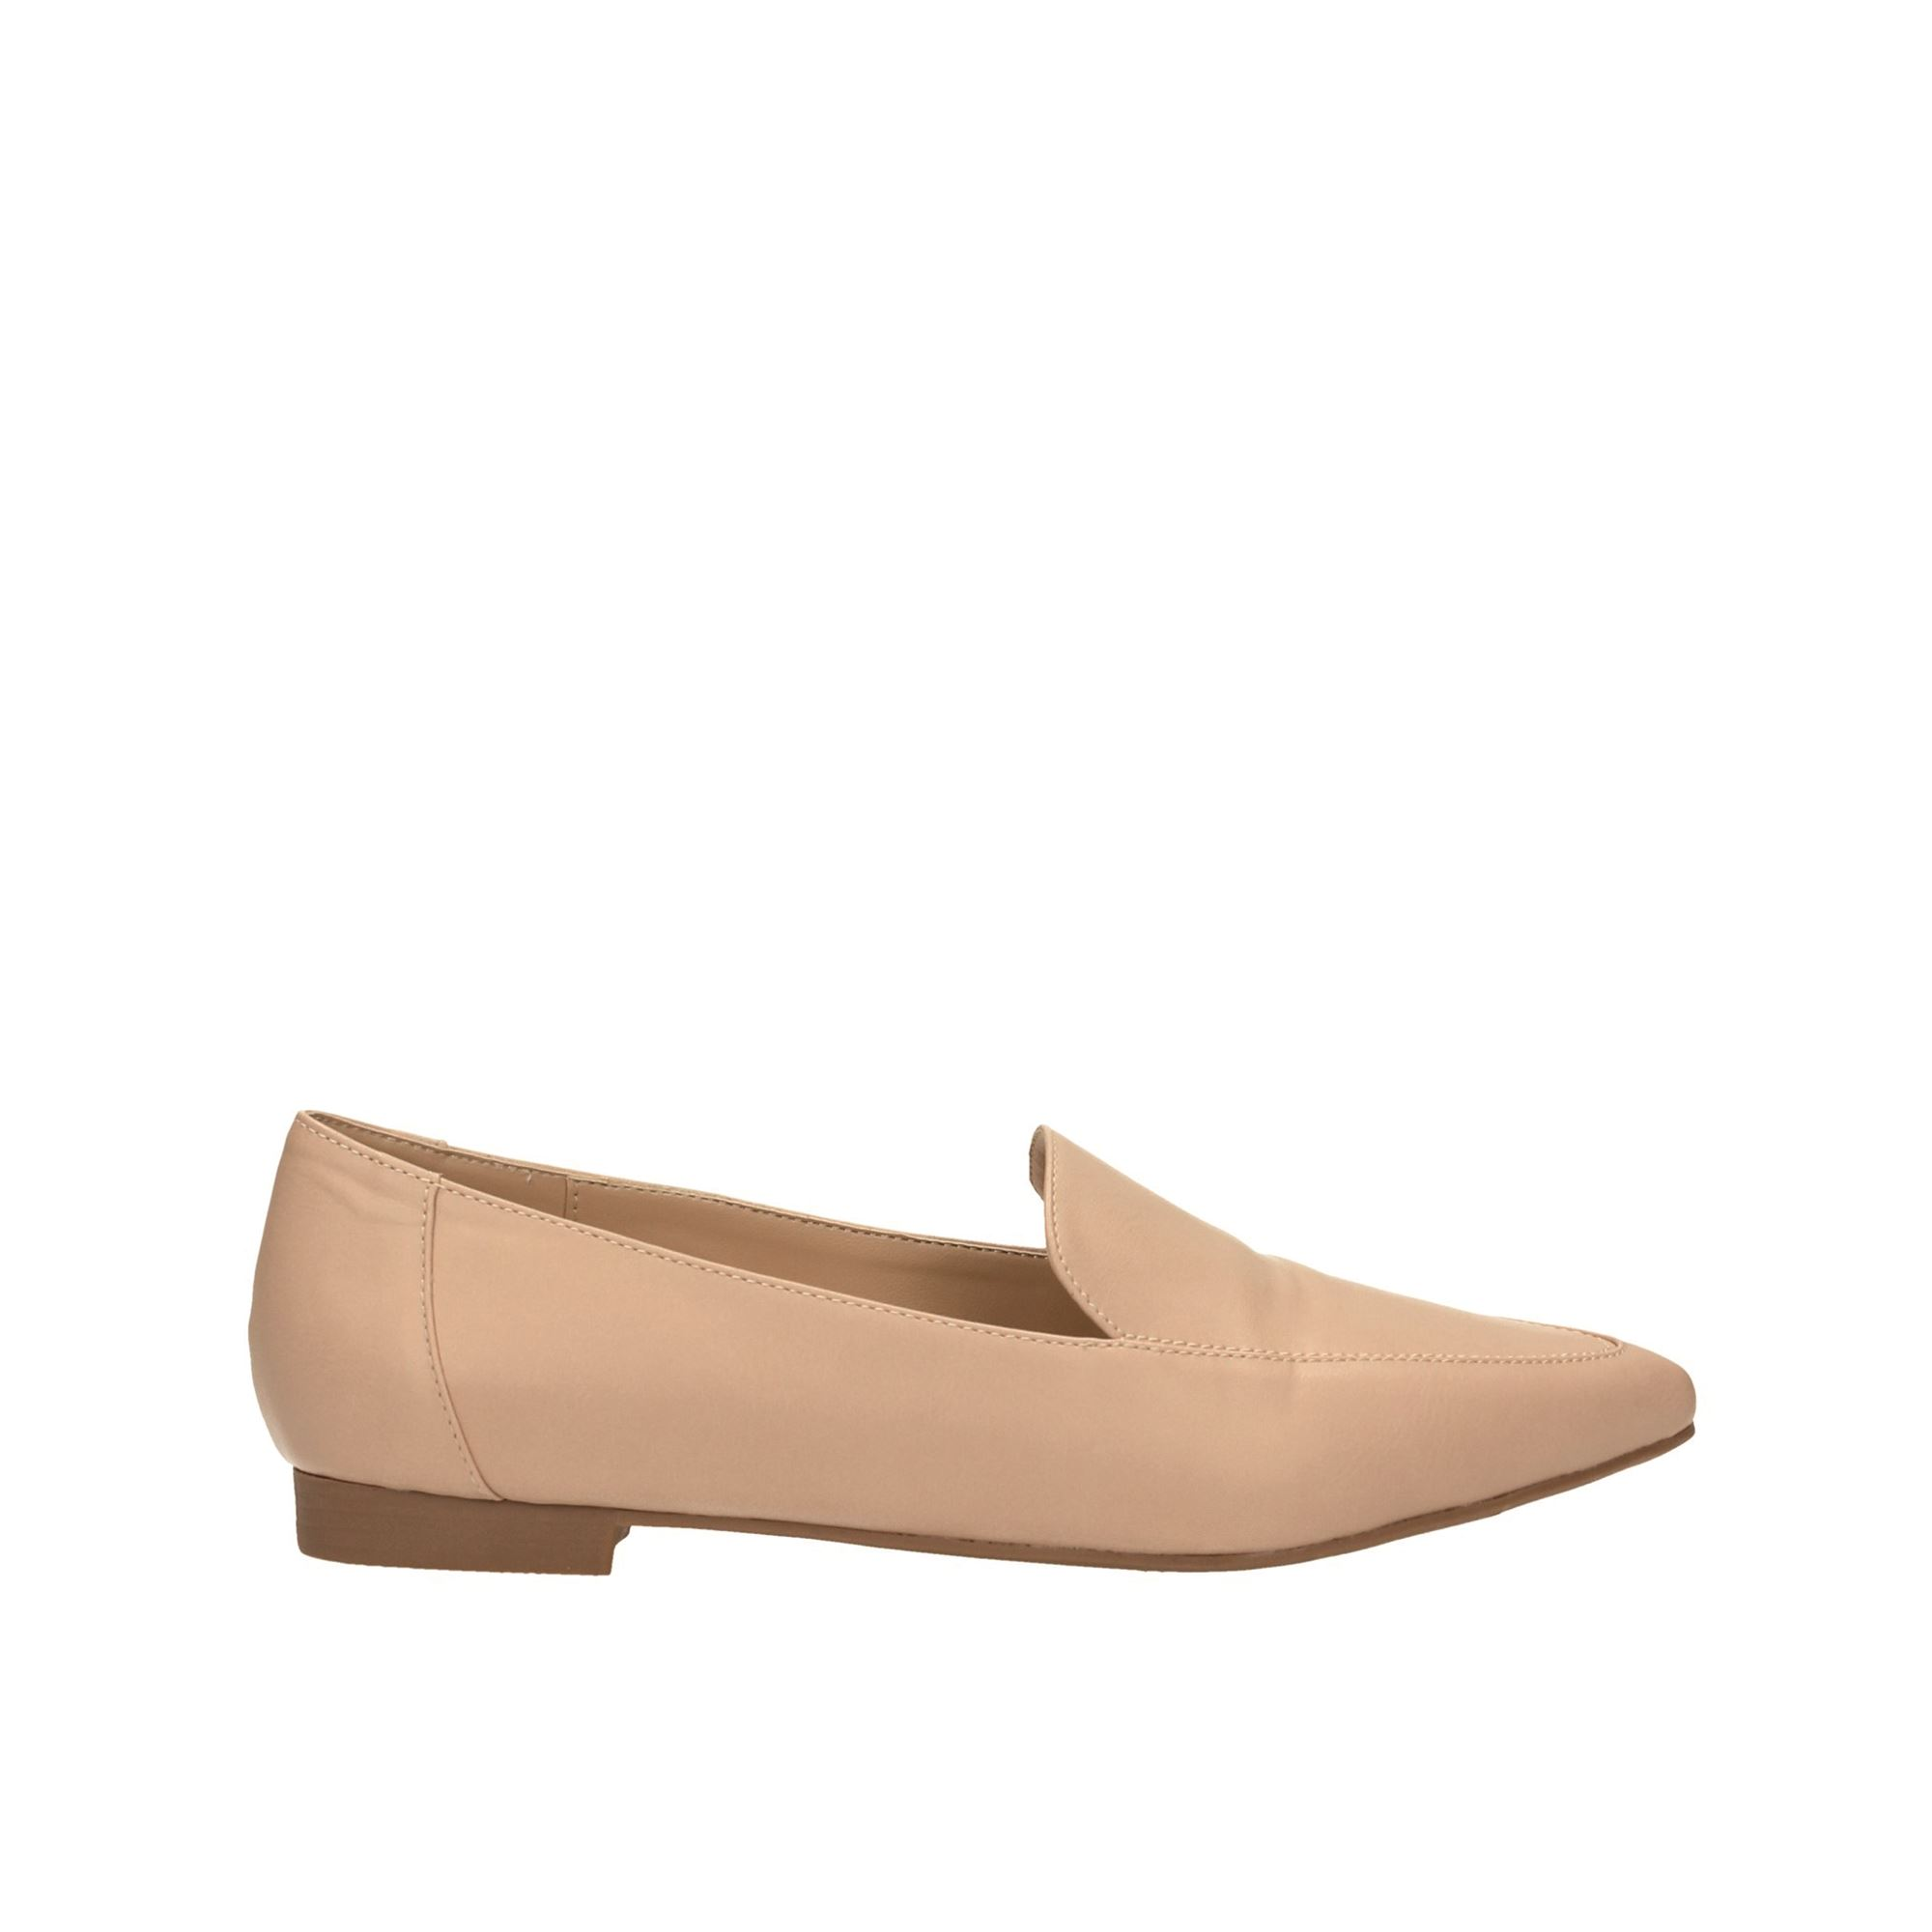 Tata Italia Shoes Woman Mocassini Nude DW503-32